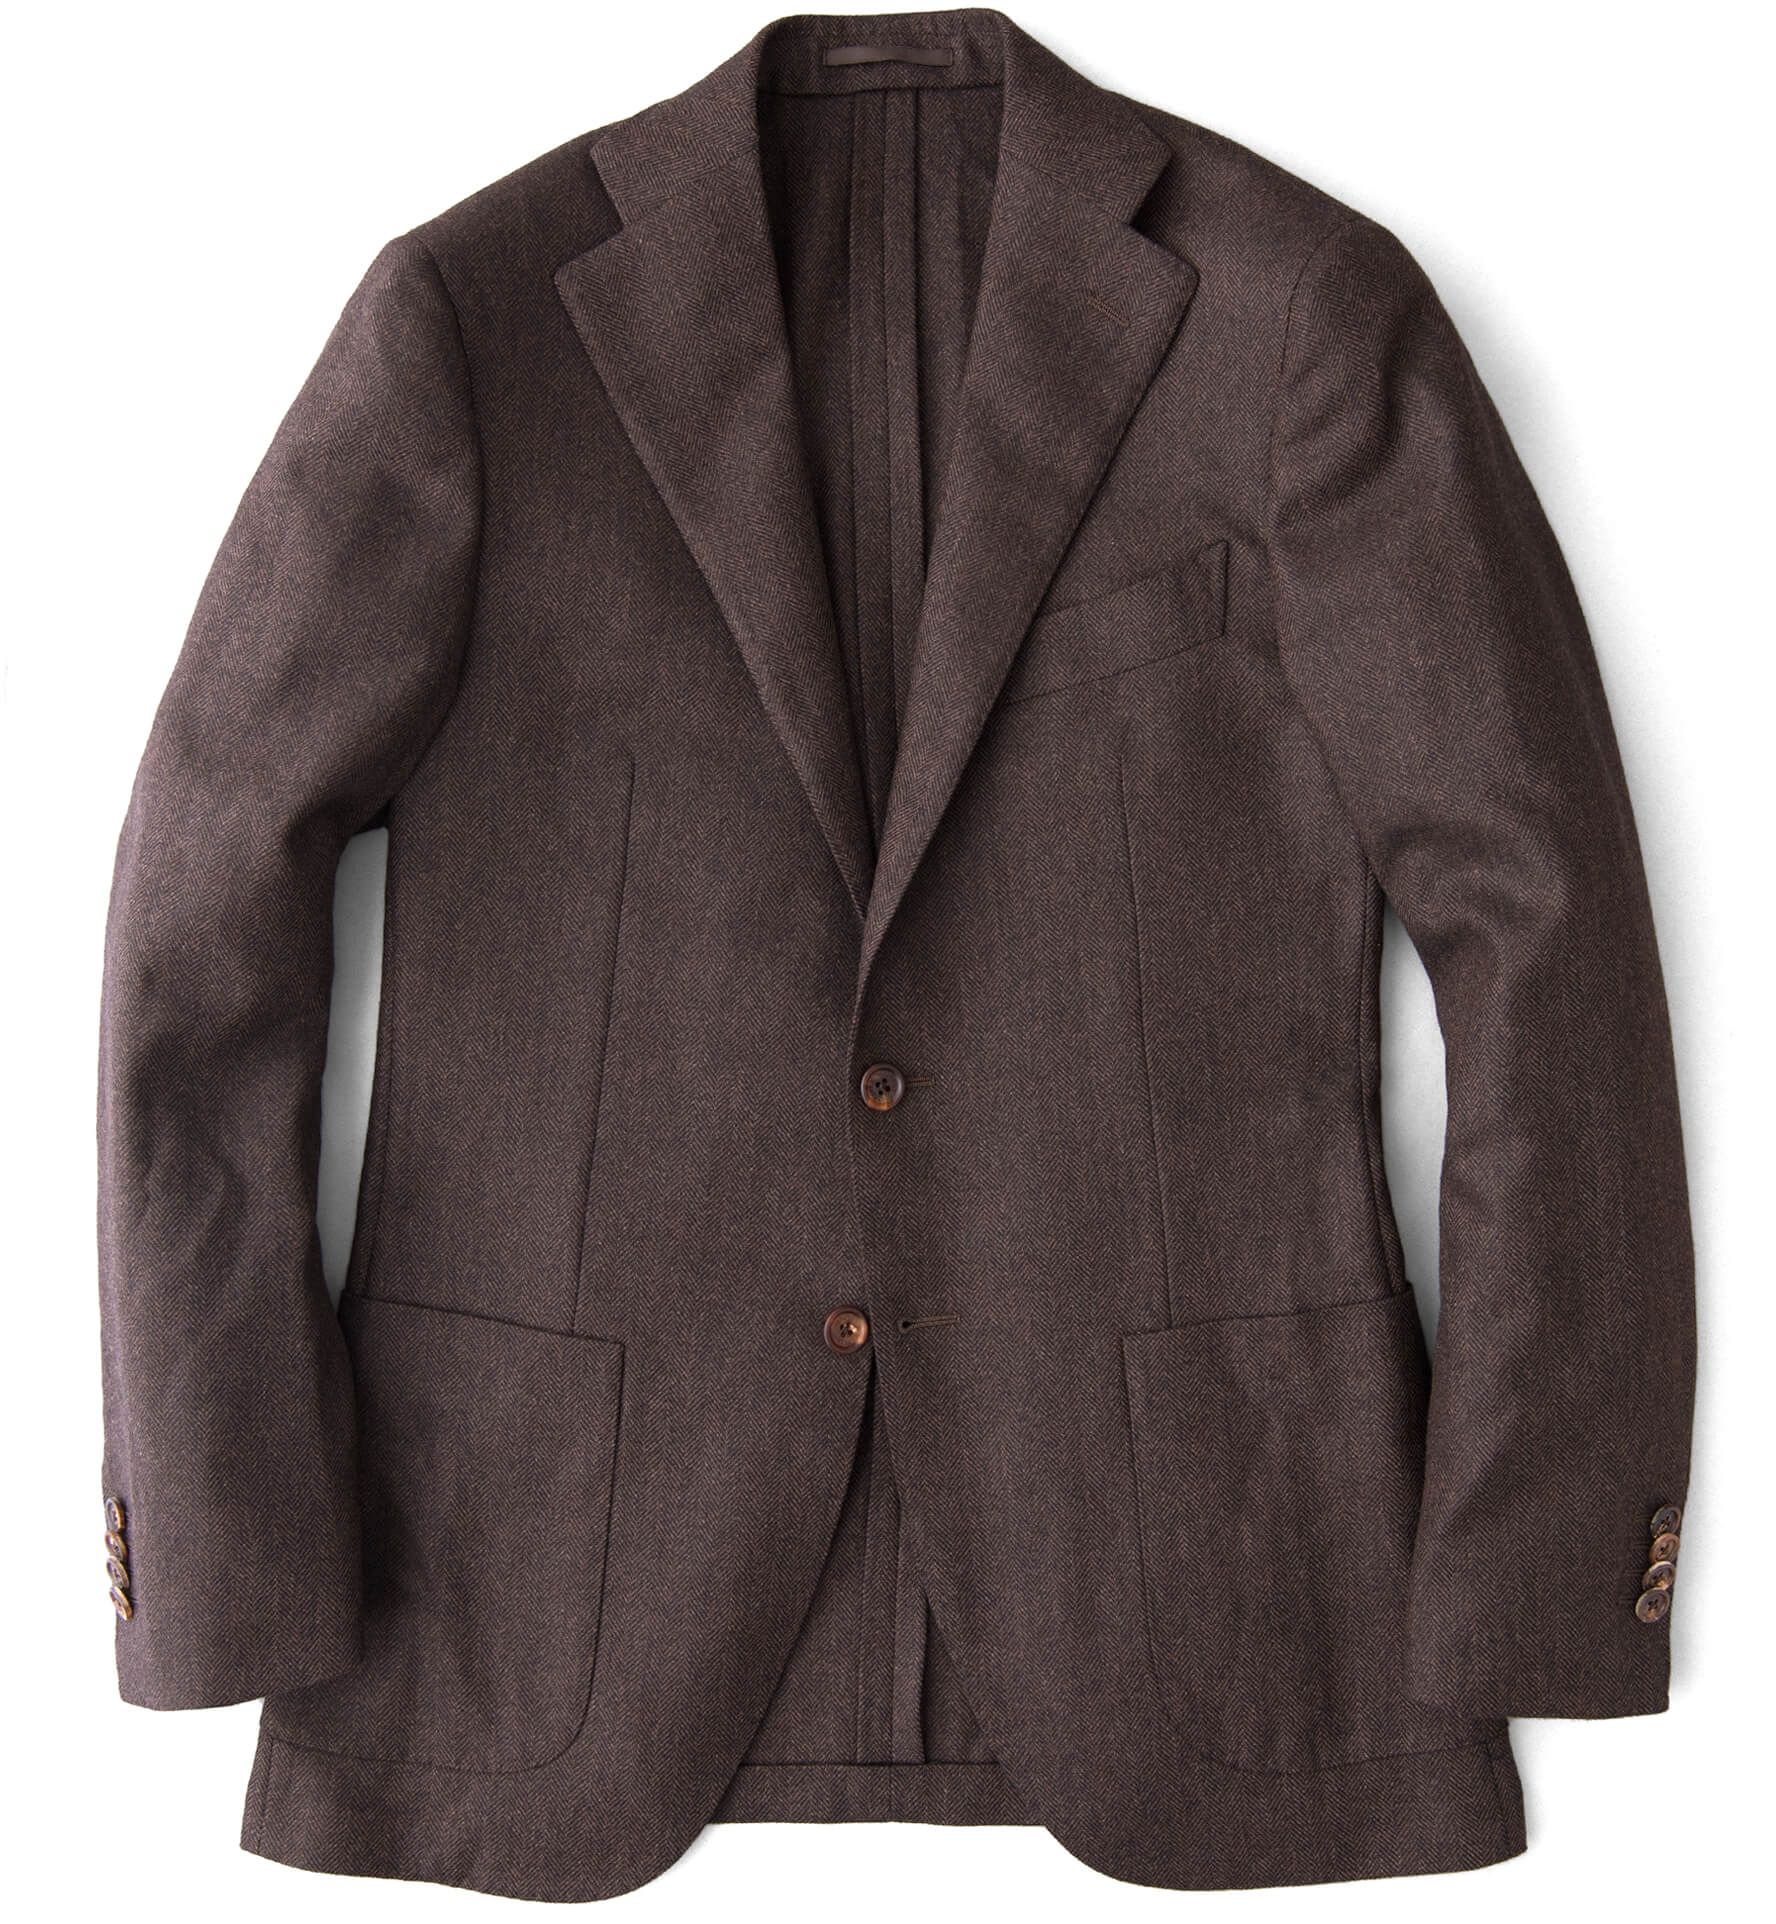 Zoom Image of Hudson Walnut Herringbone Wool and Cashmere Jacket